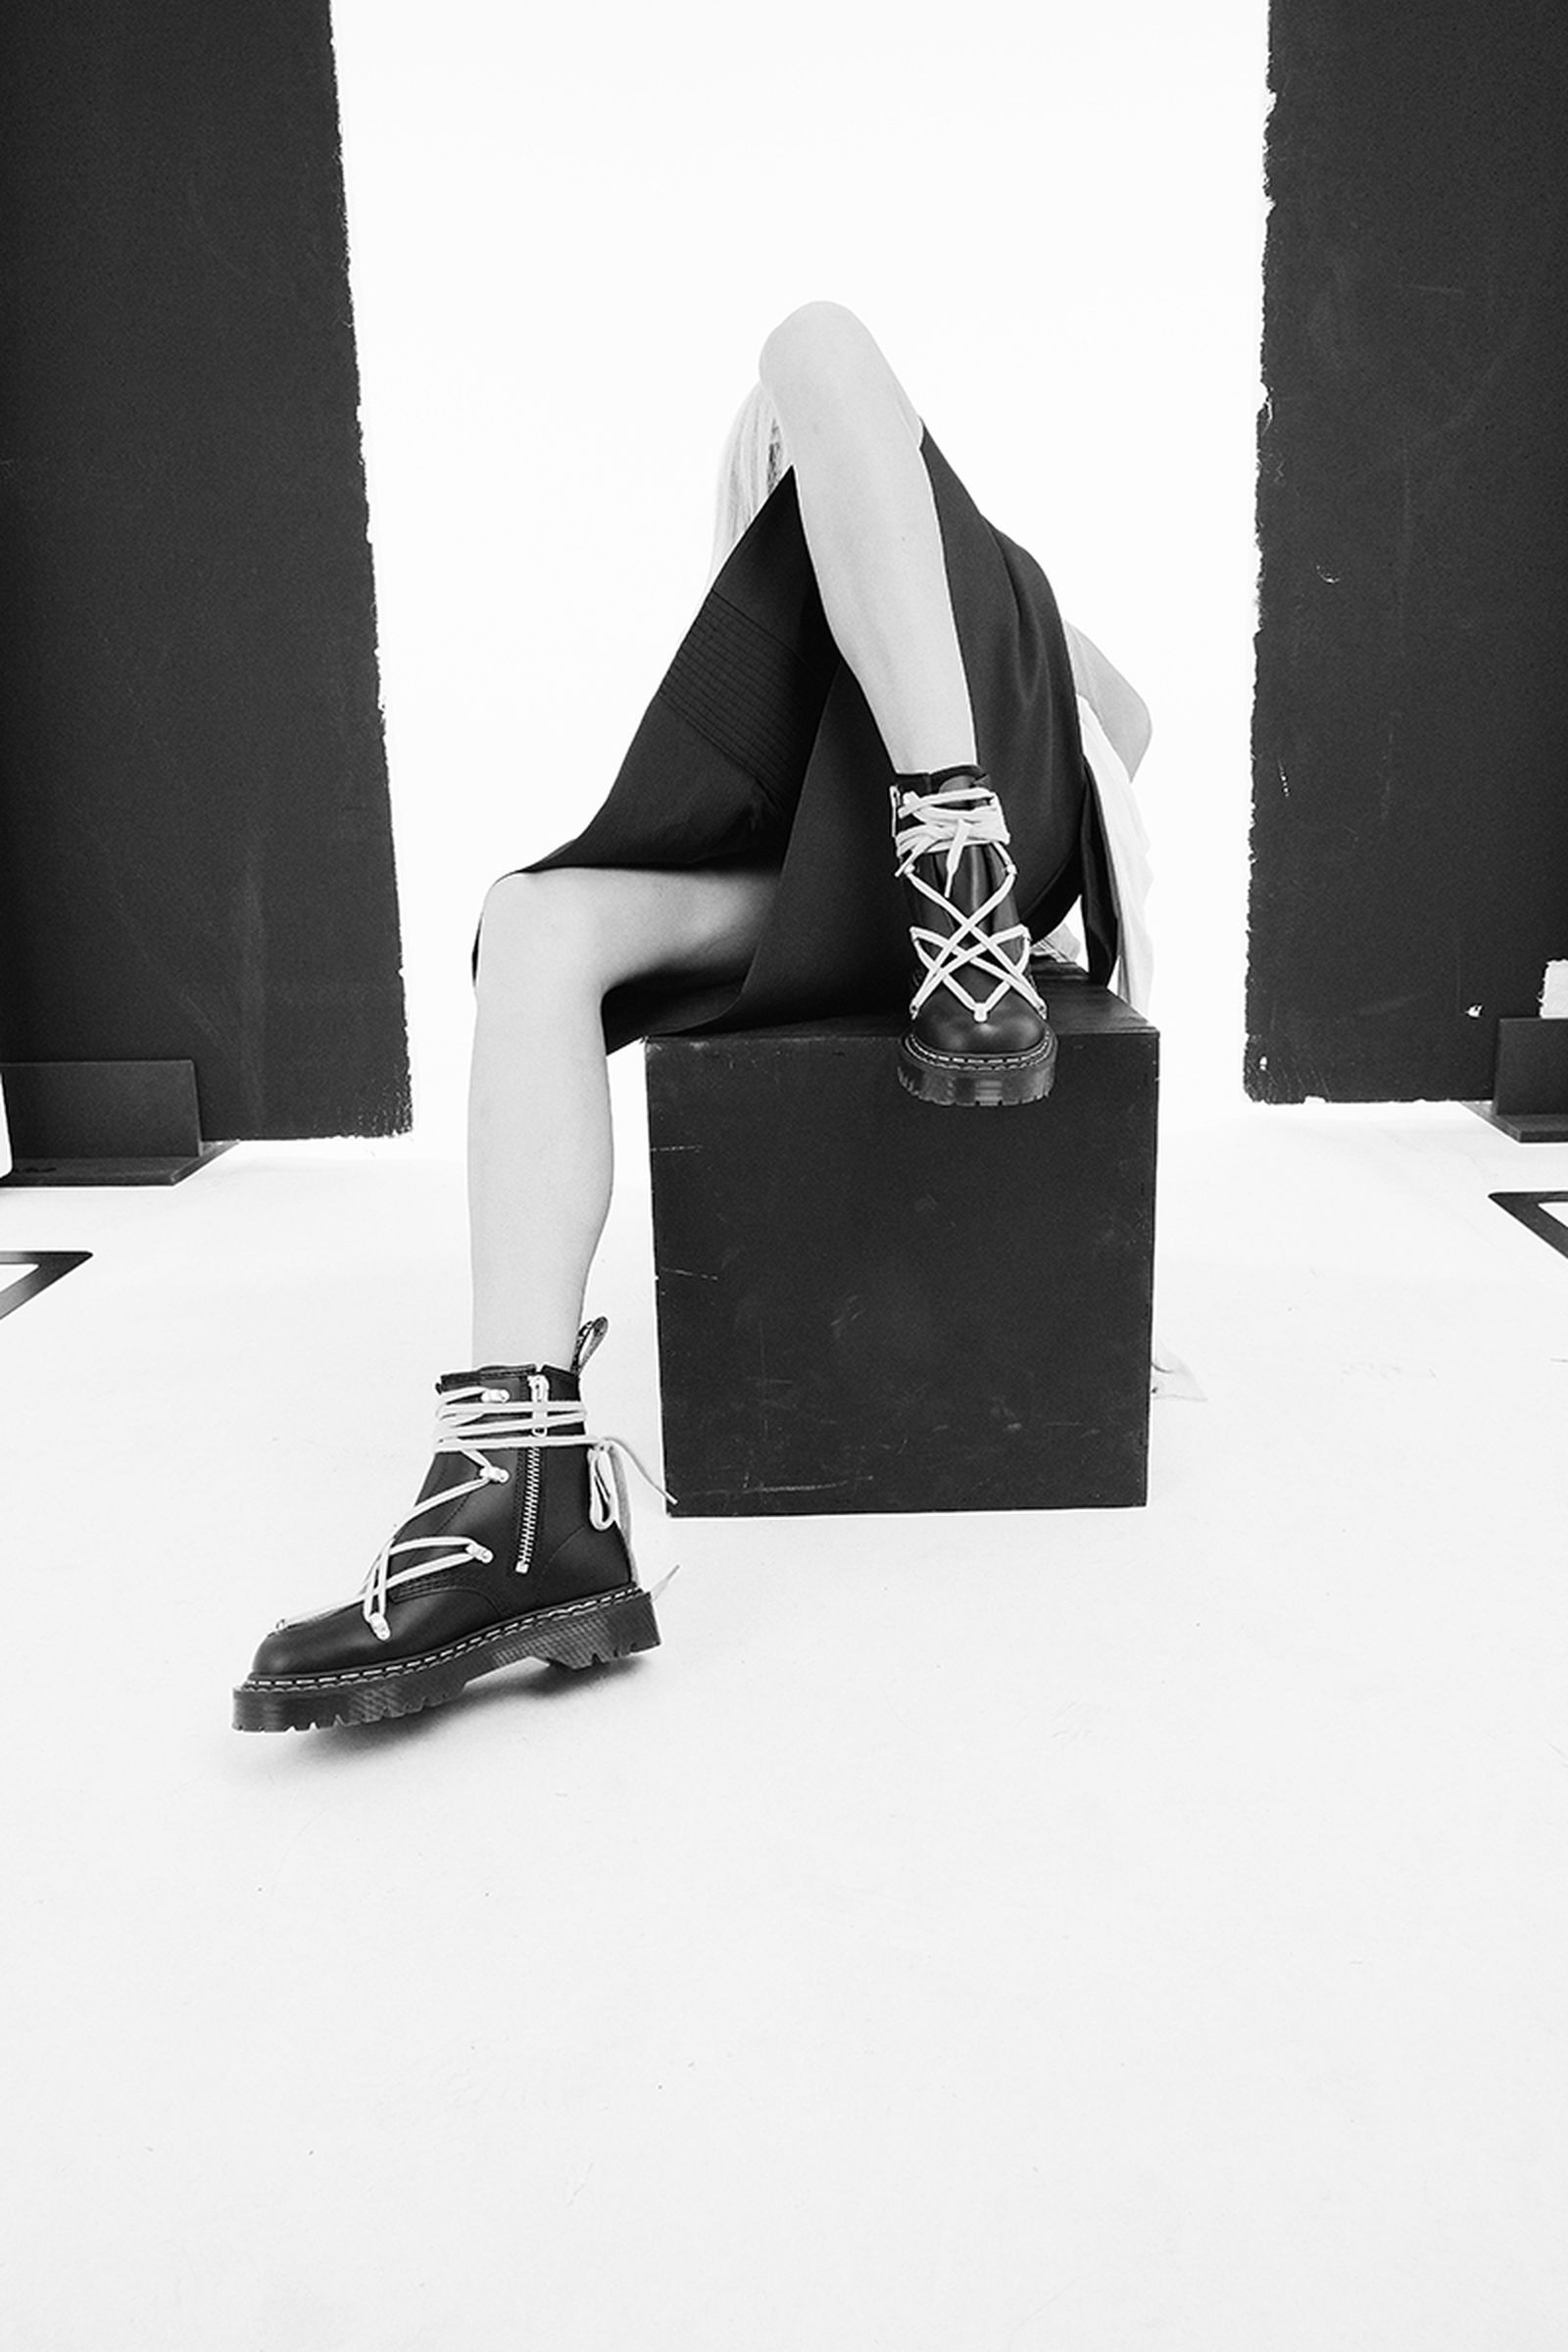 rick-owens-dr-martens-1460-bex-release-date-price-02